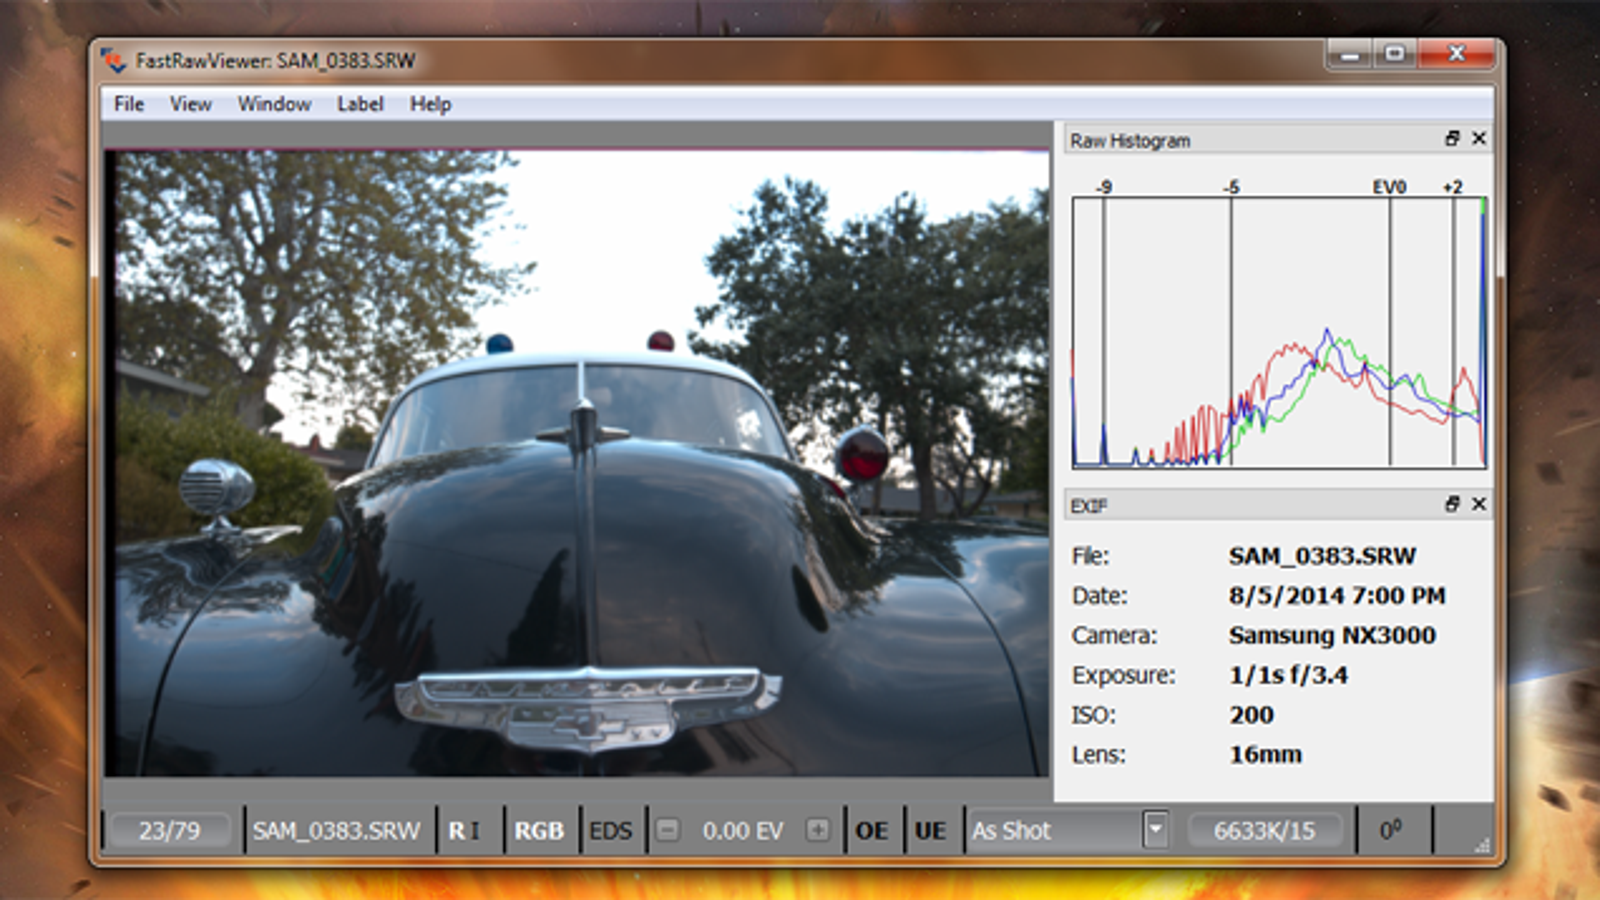 FastRawViewer Displays RAW Photo Files and EXIF Data Quickly